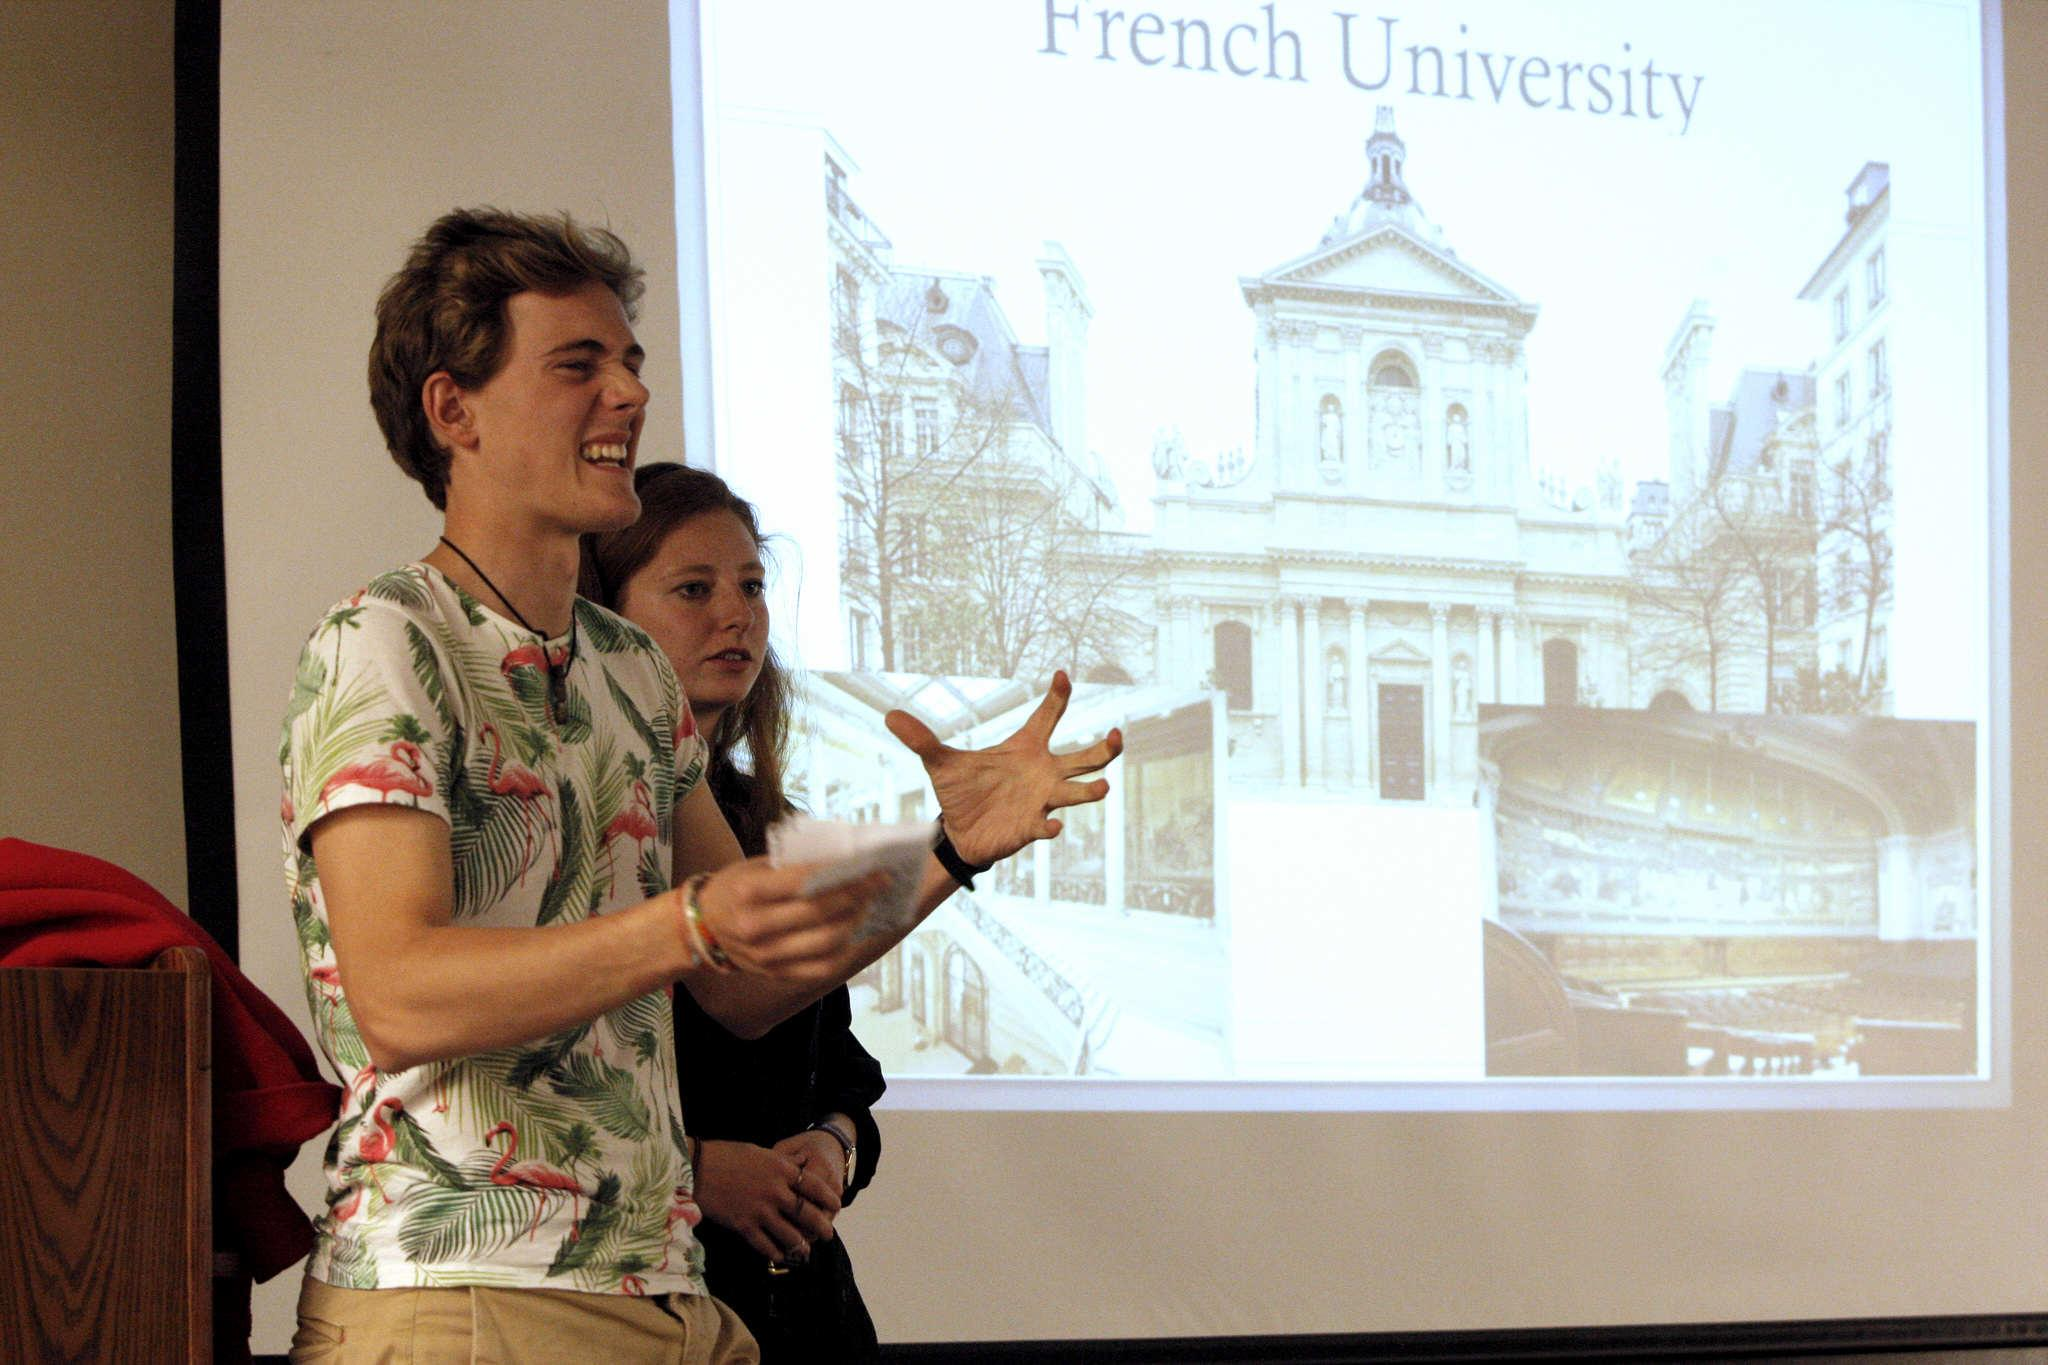 Parisian exchange students Brendon Novel and Auriane Denis-Loupof describe life in Paris during International Education Week in the Rosa Parks conference room in the Cesar Chavez Student Center Monday, Nov. 17, 2014. Daniel Porter / Xpress